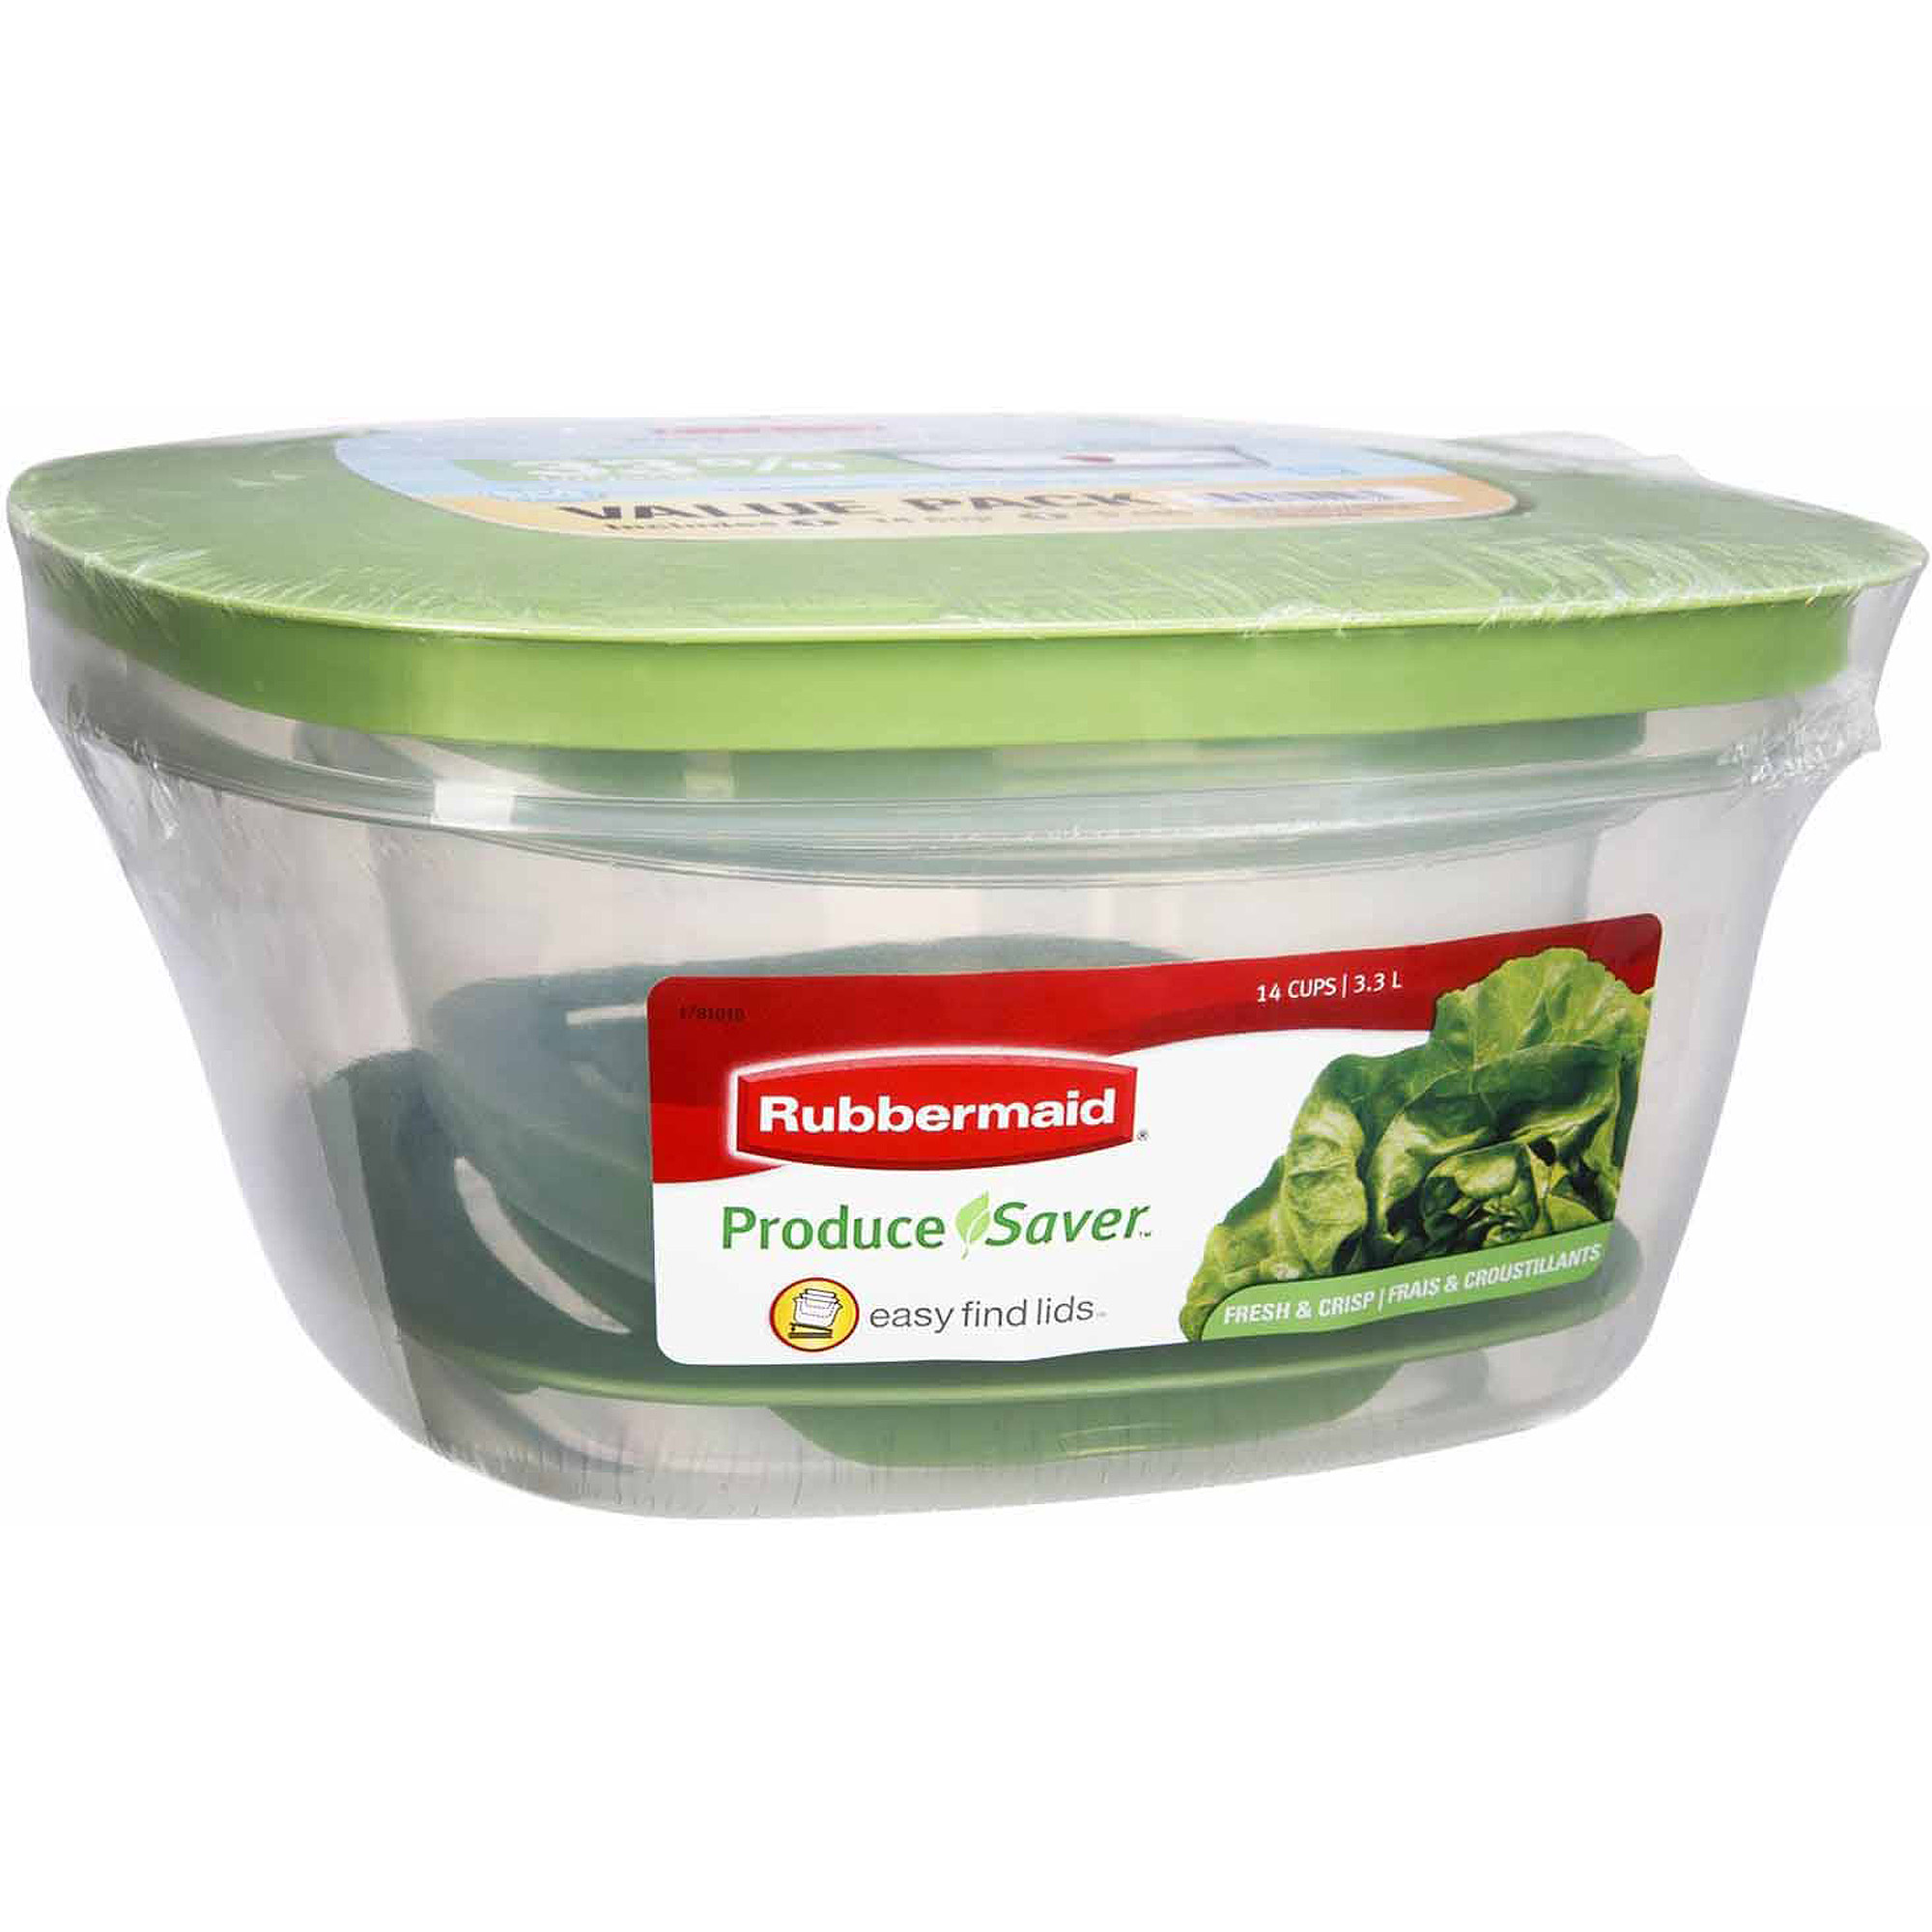 Rubbermaid Produce Savers, 14 Cup, 2pk